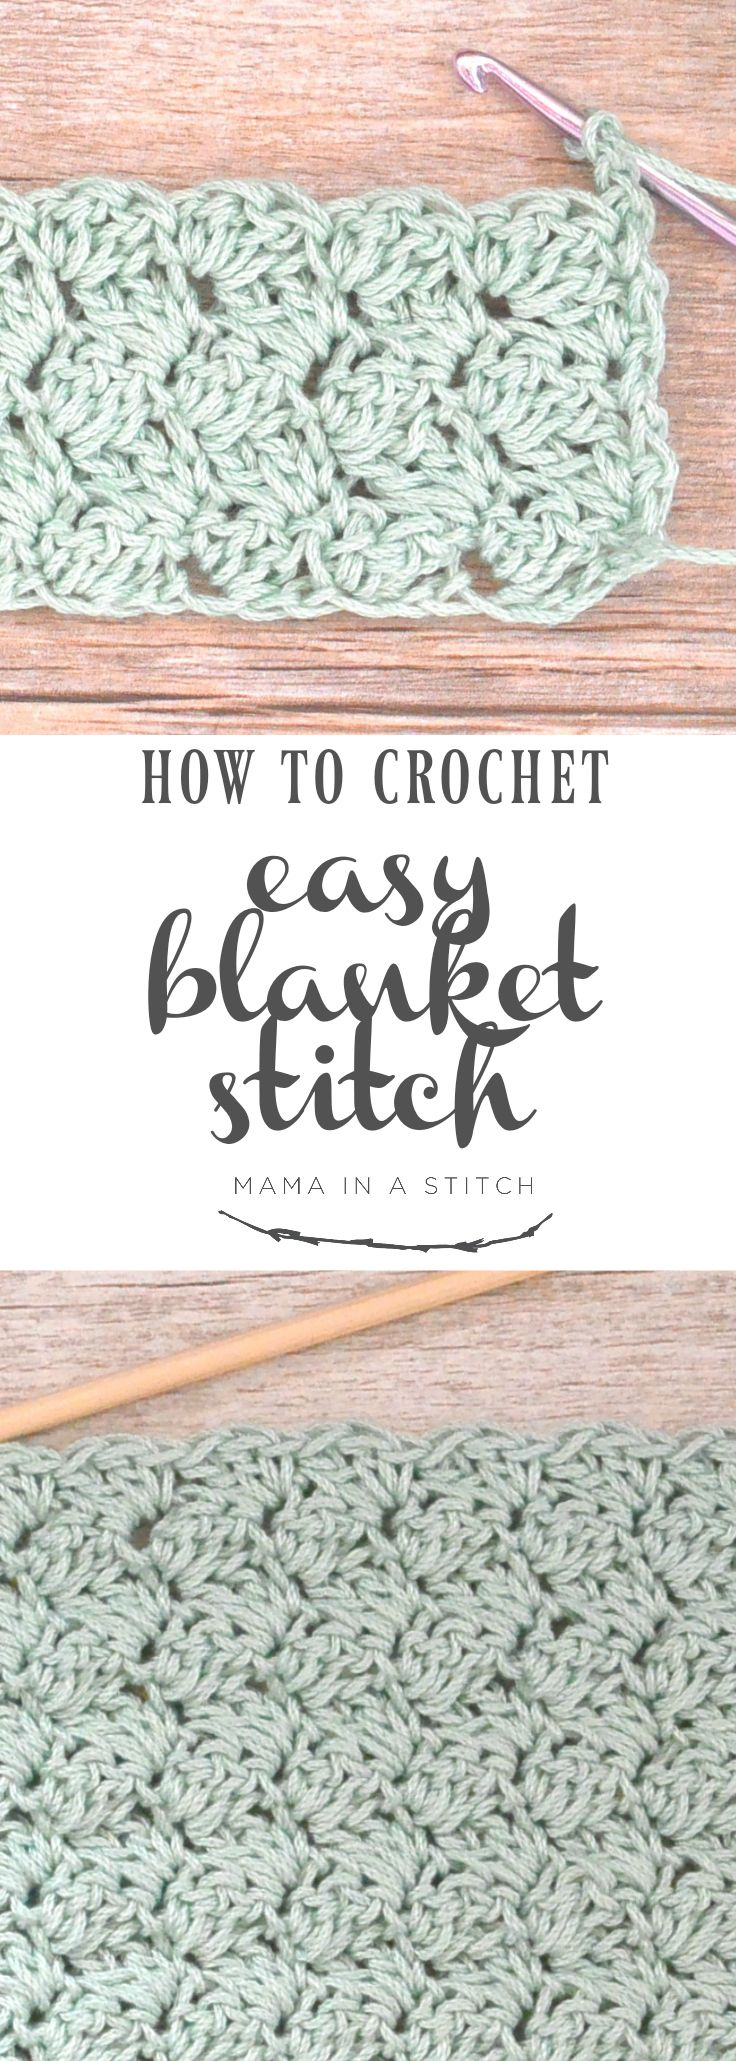 How To Crochet the Blanket Stitch | Crochet | Pinterest | Tejido ...